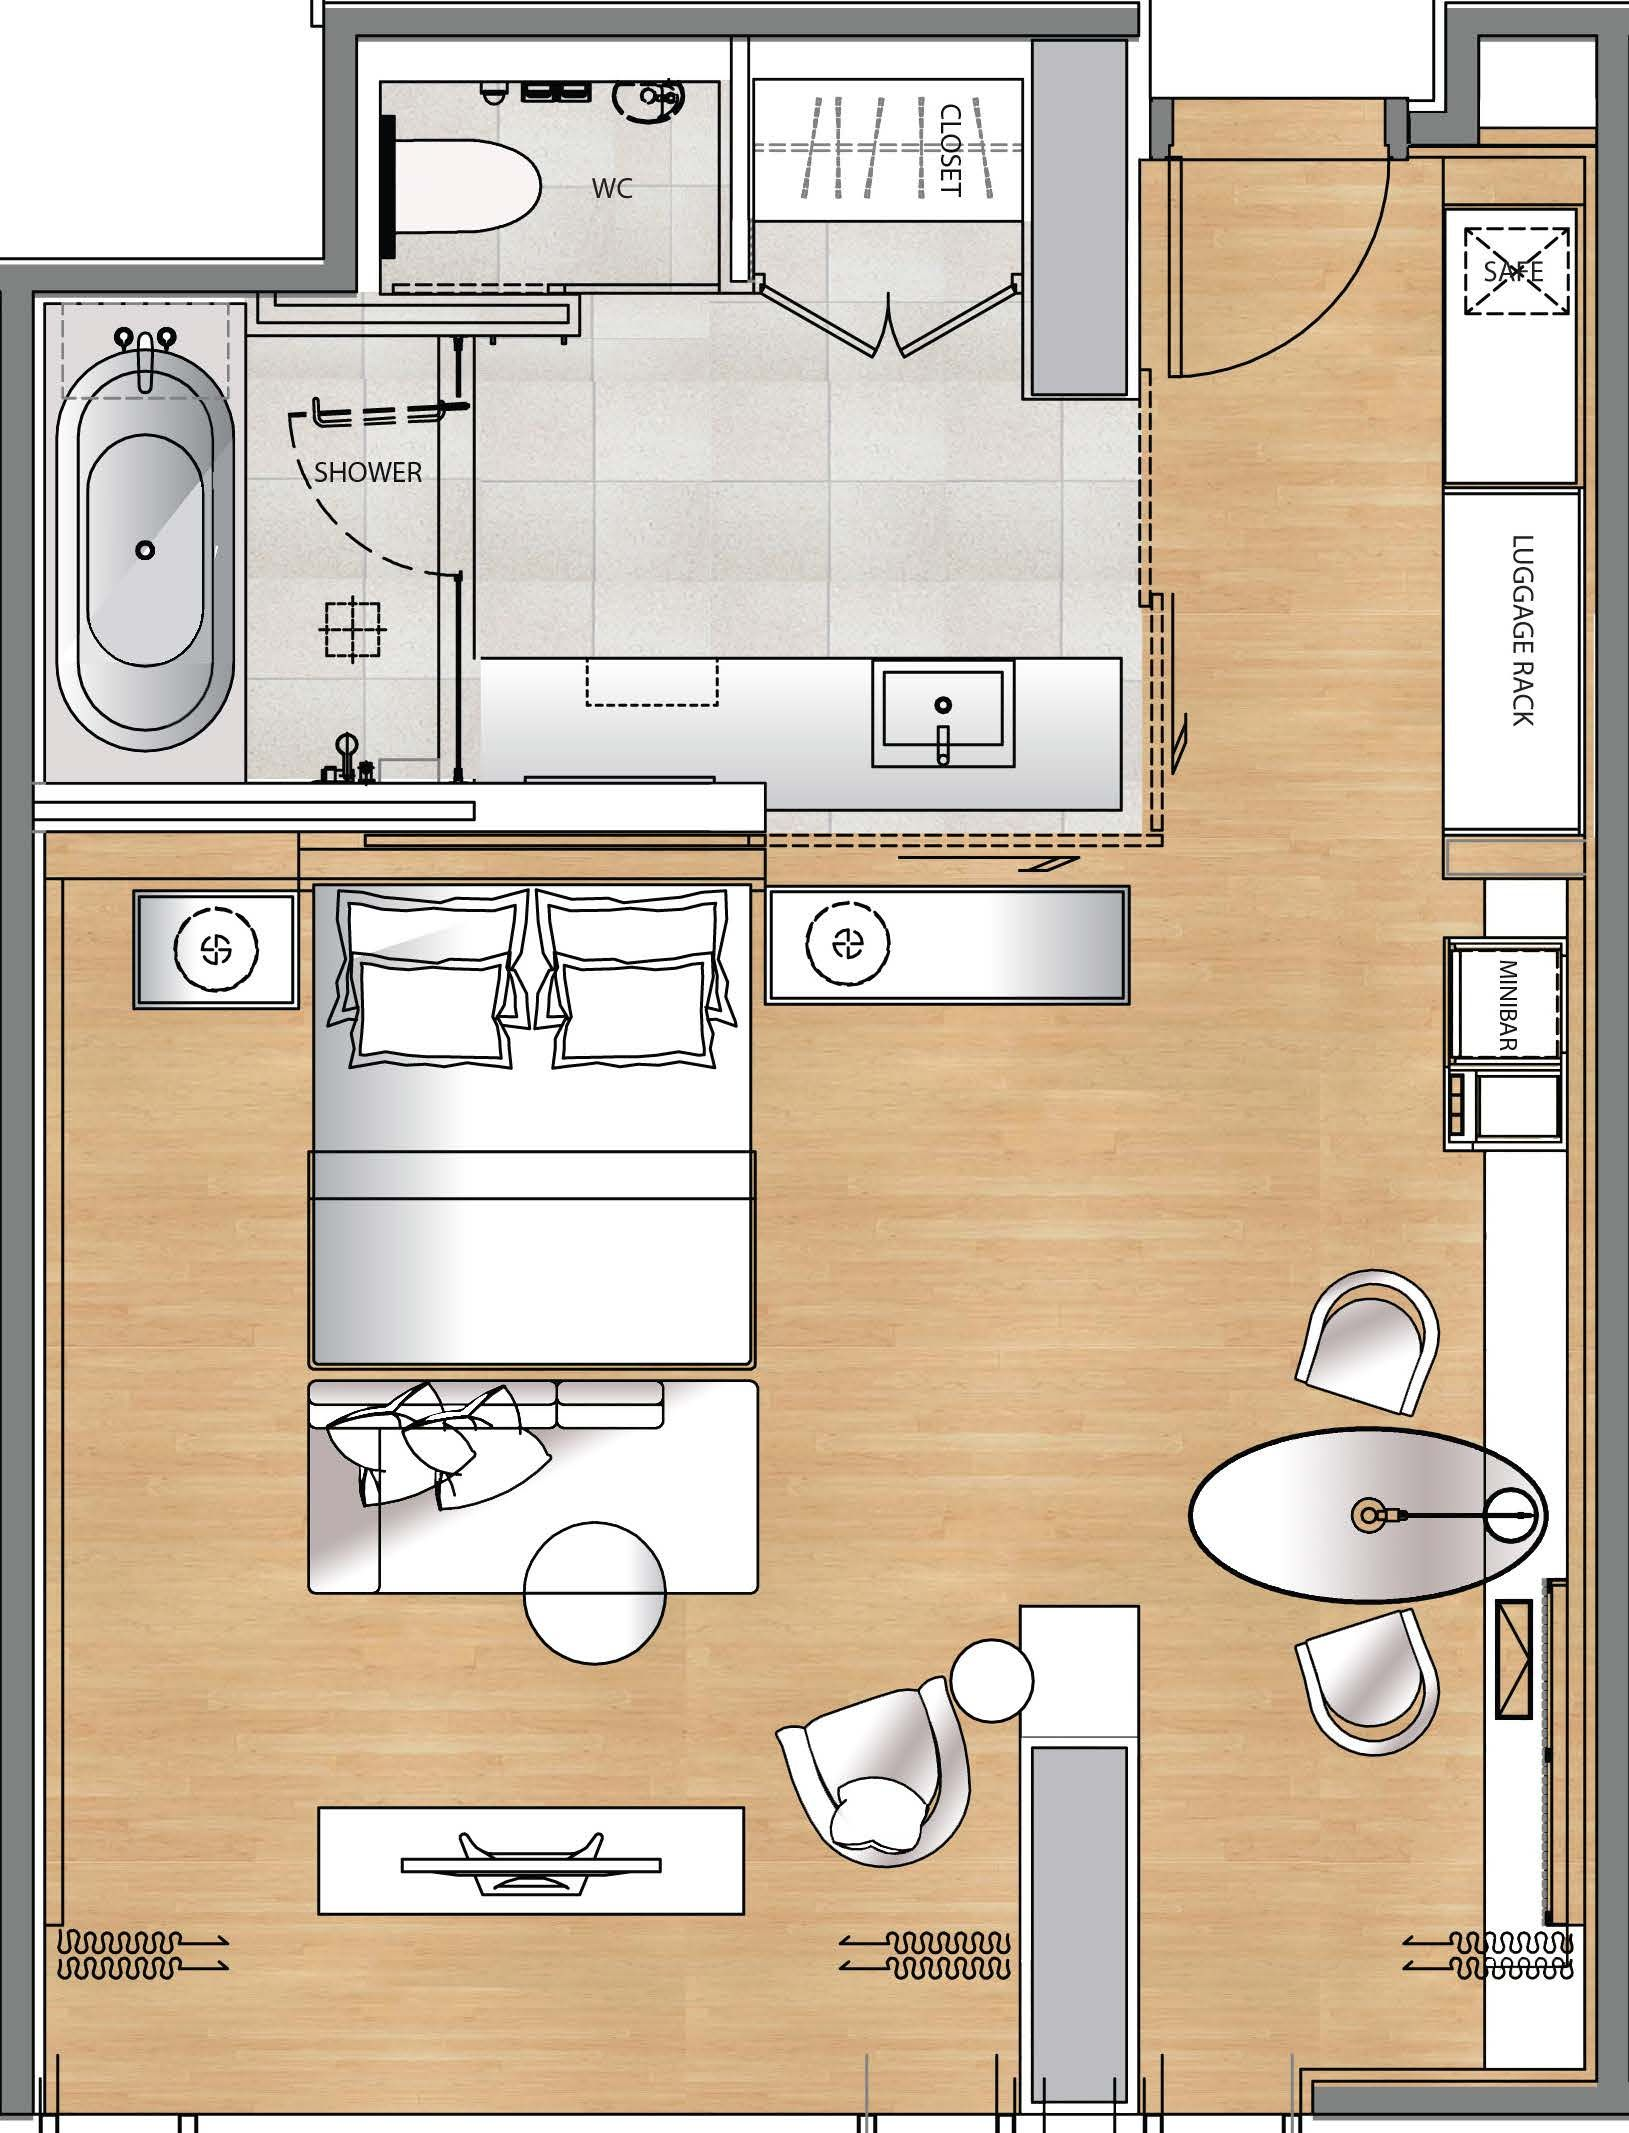 Hotel gym floor plan google search hotel rooms for Hotel suite design